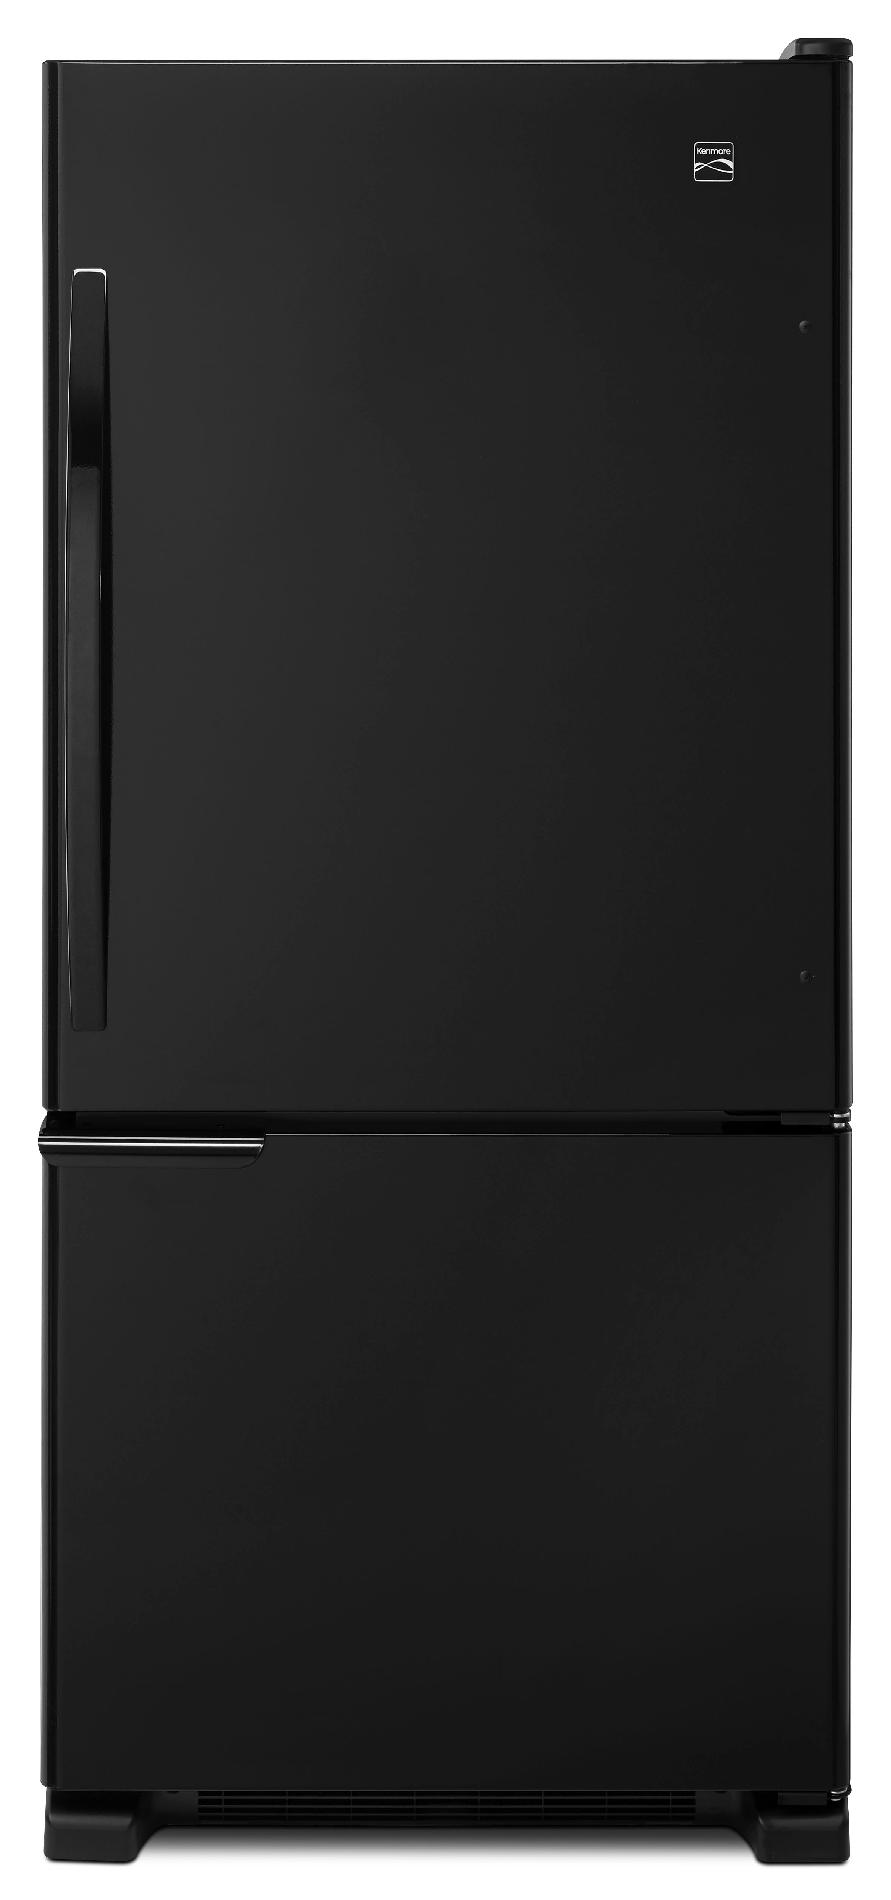 69319-19-cu-ft-Bottom-Freezer-Refrigerator-Black